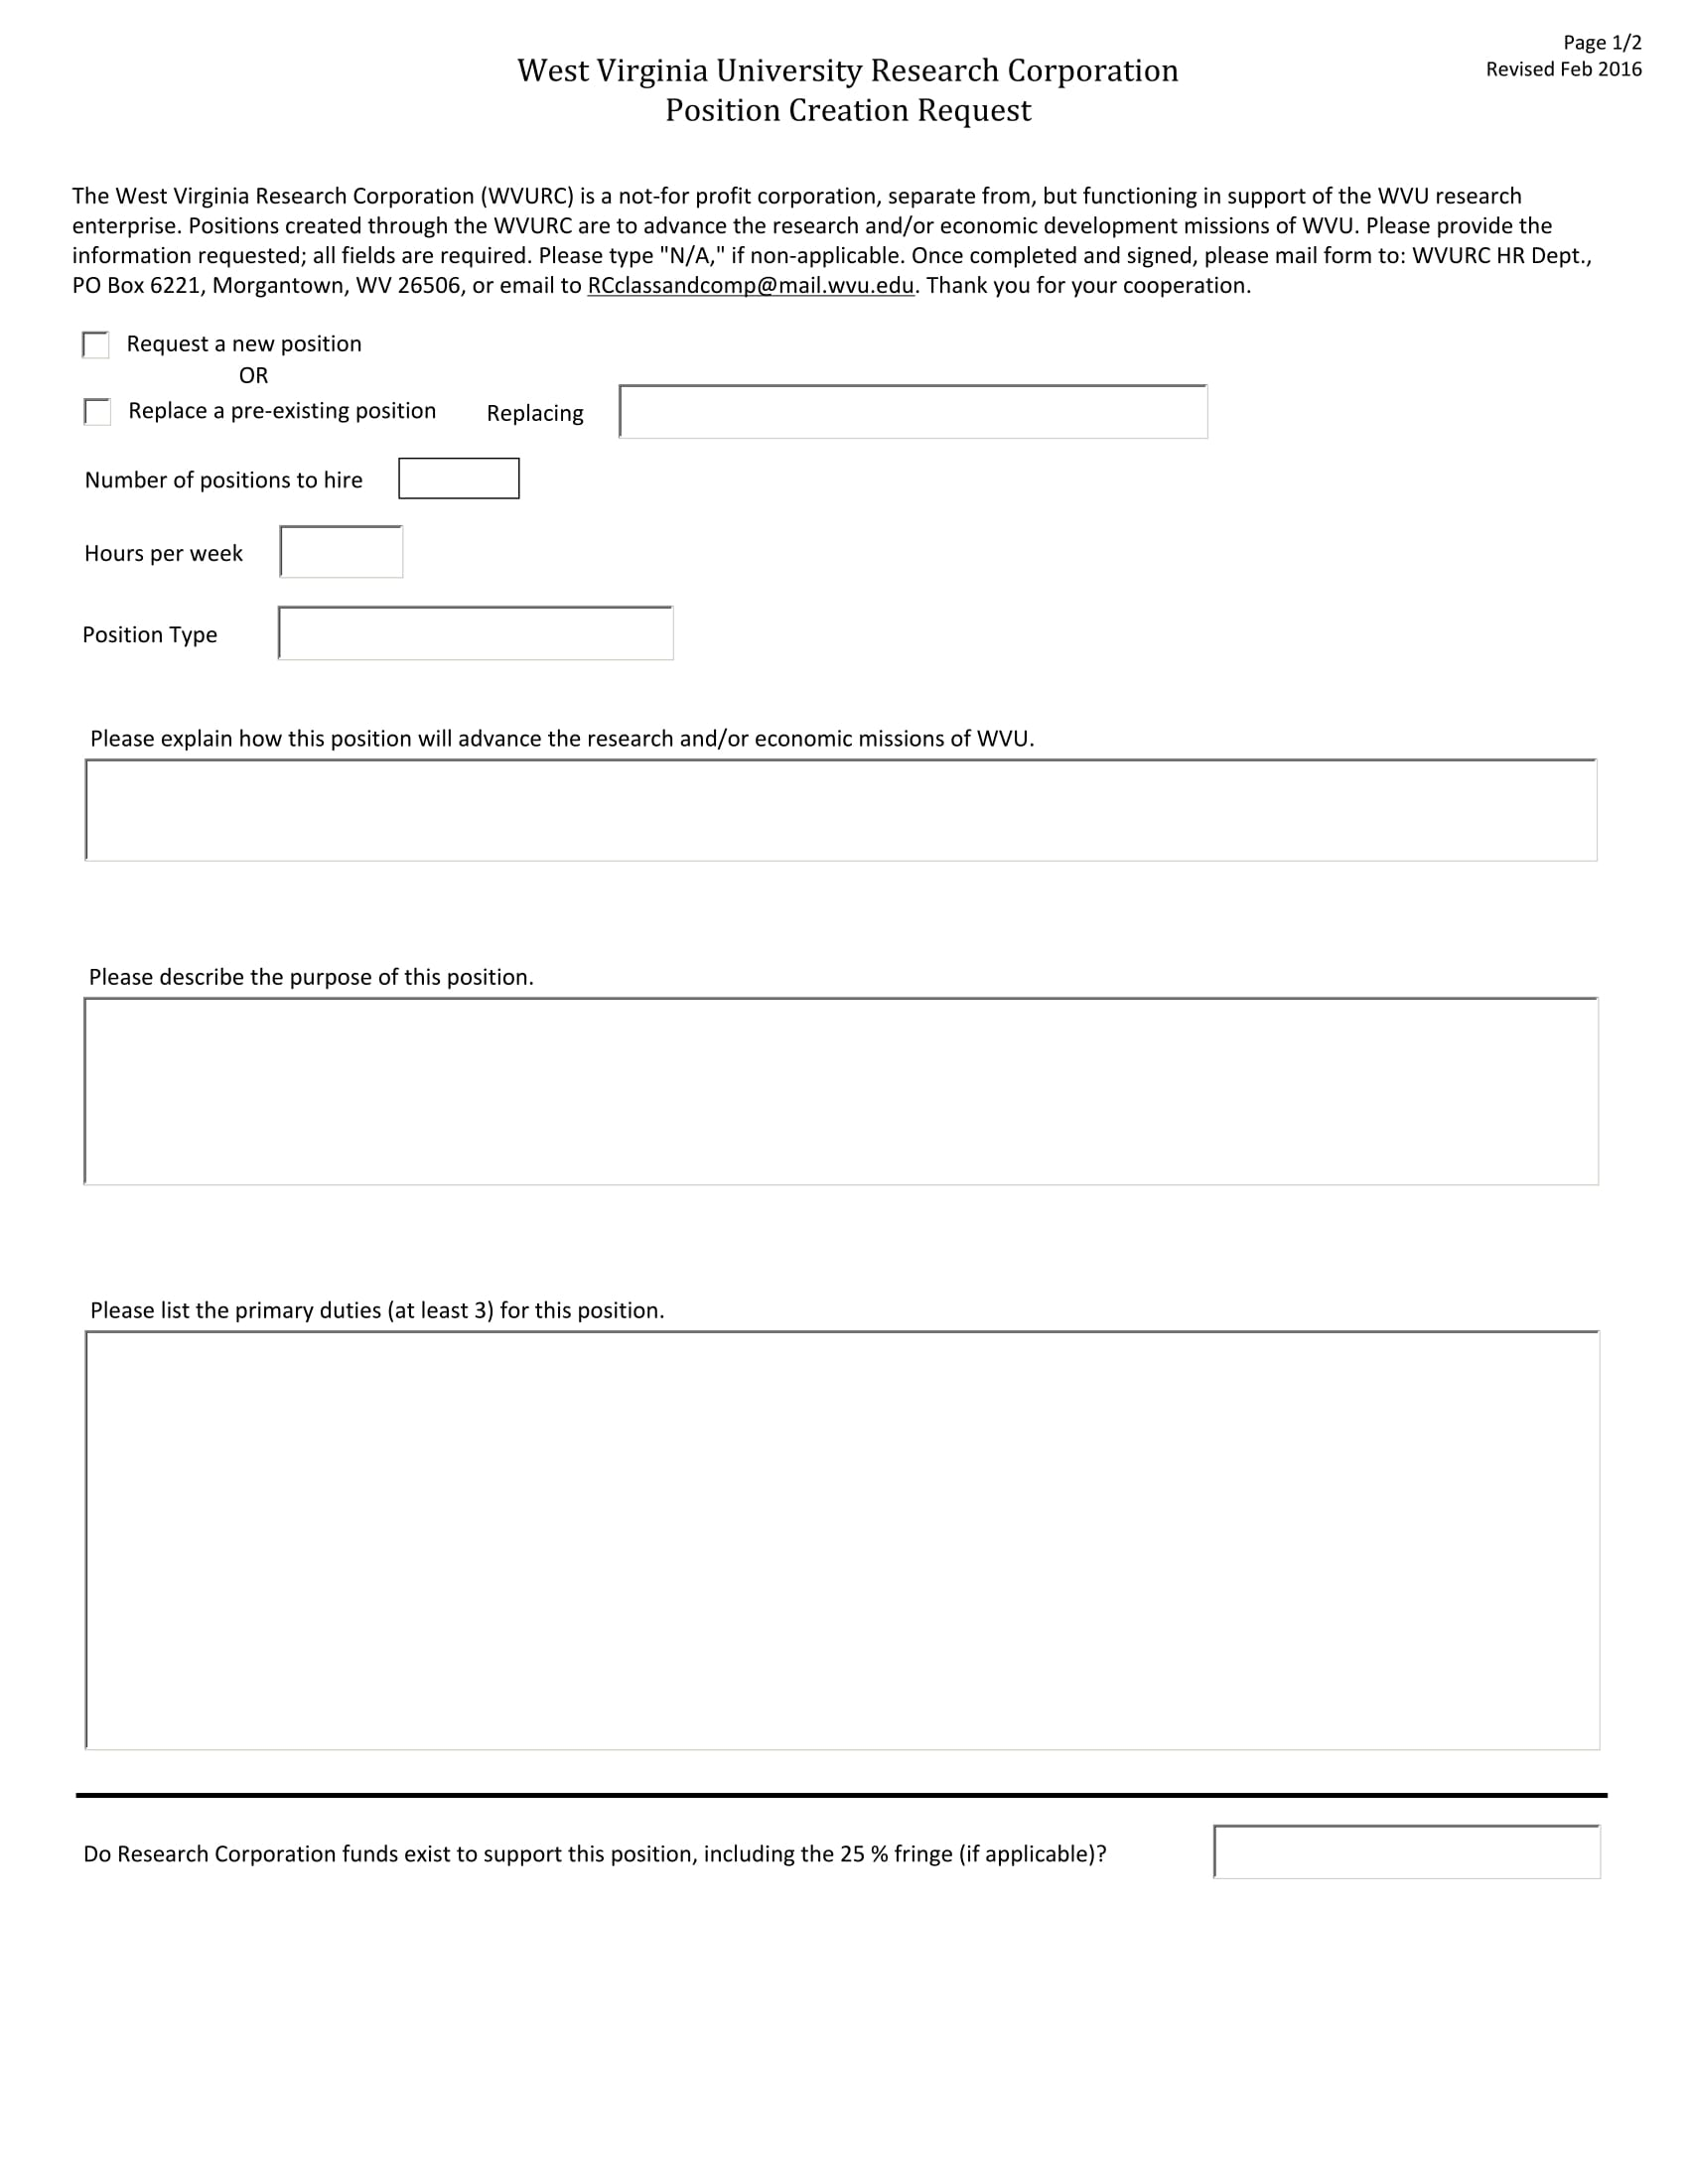 position creation request form 1